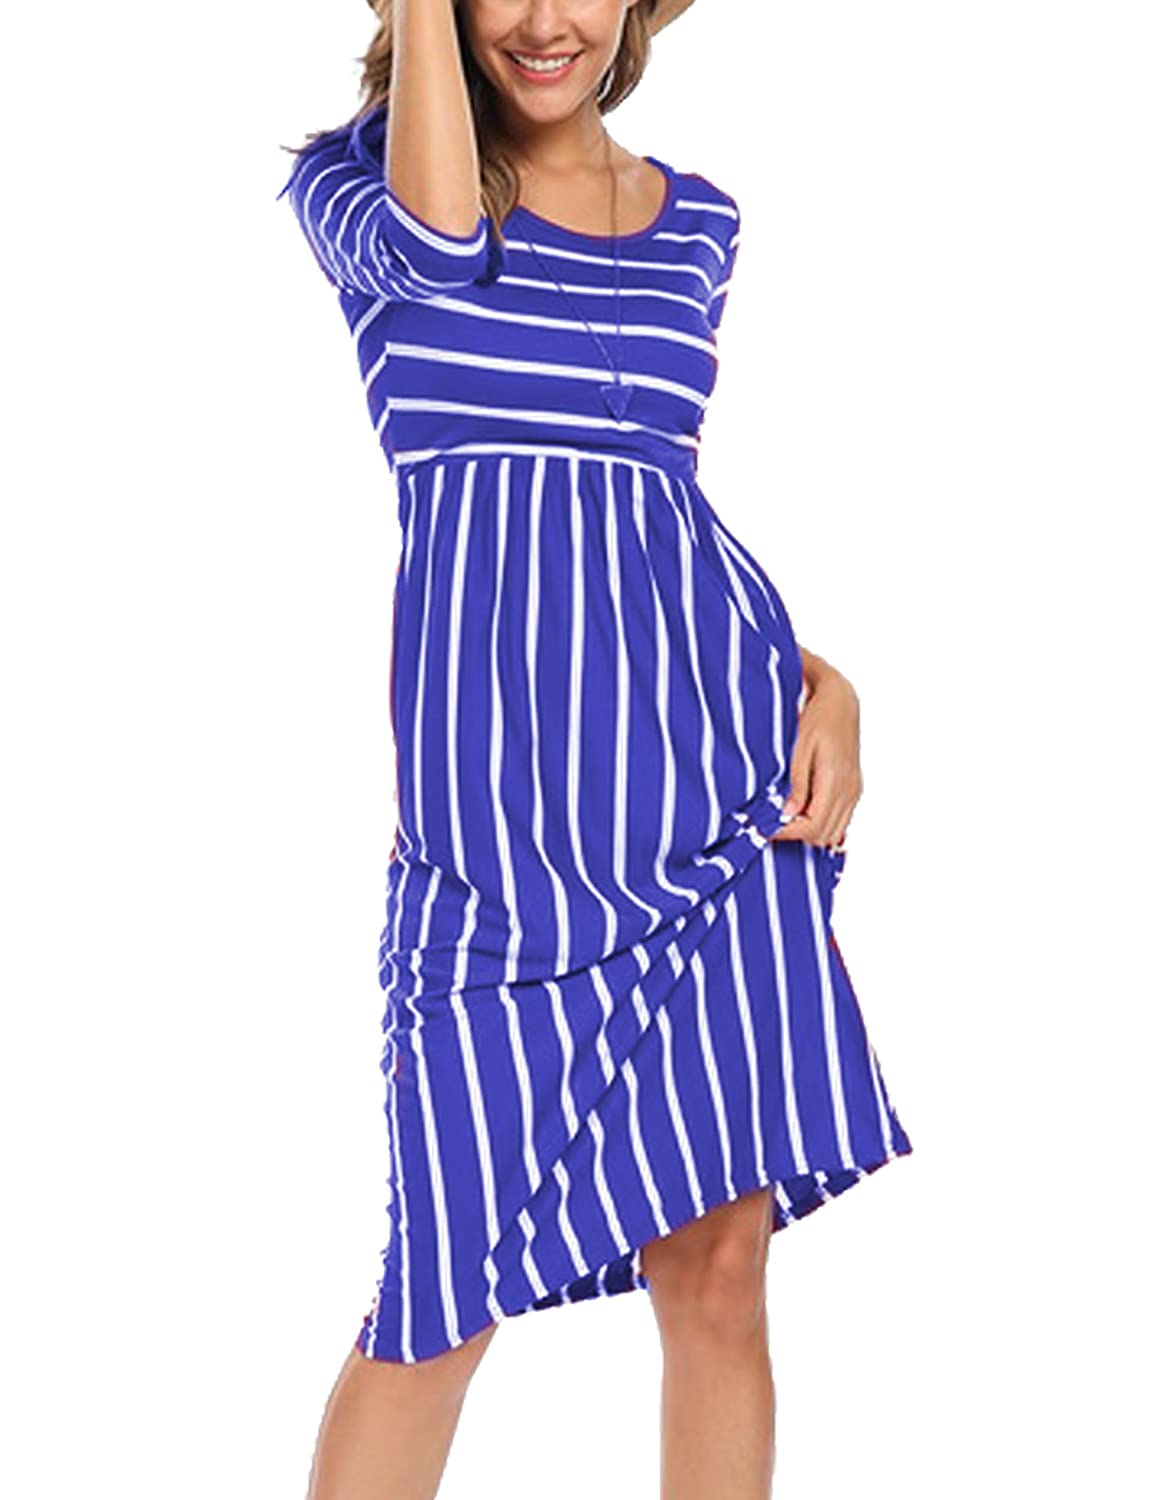 Halife Women's 3 4 Sleeve Stripe Elastic Waist Casual Dress with Pocket v175324f